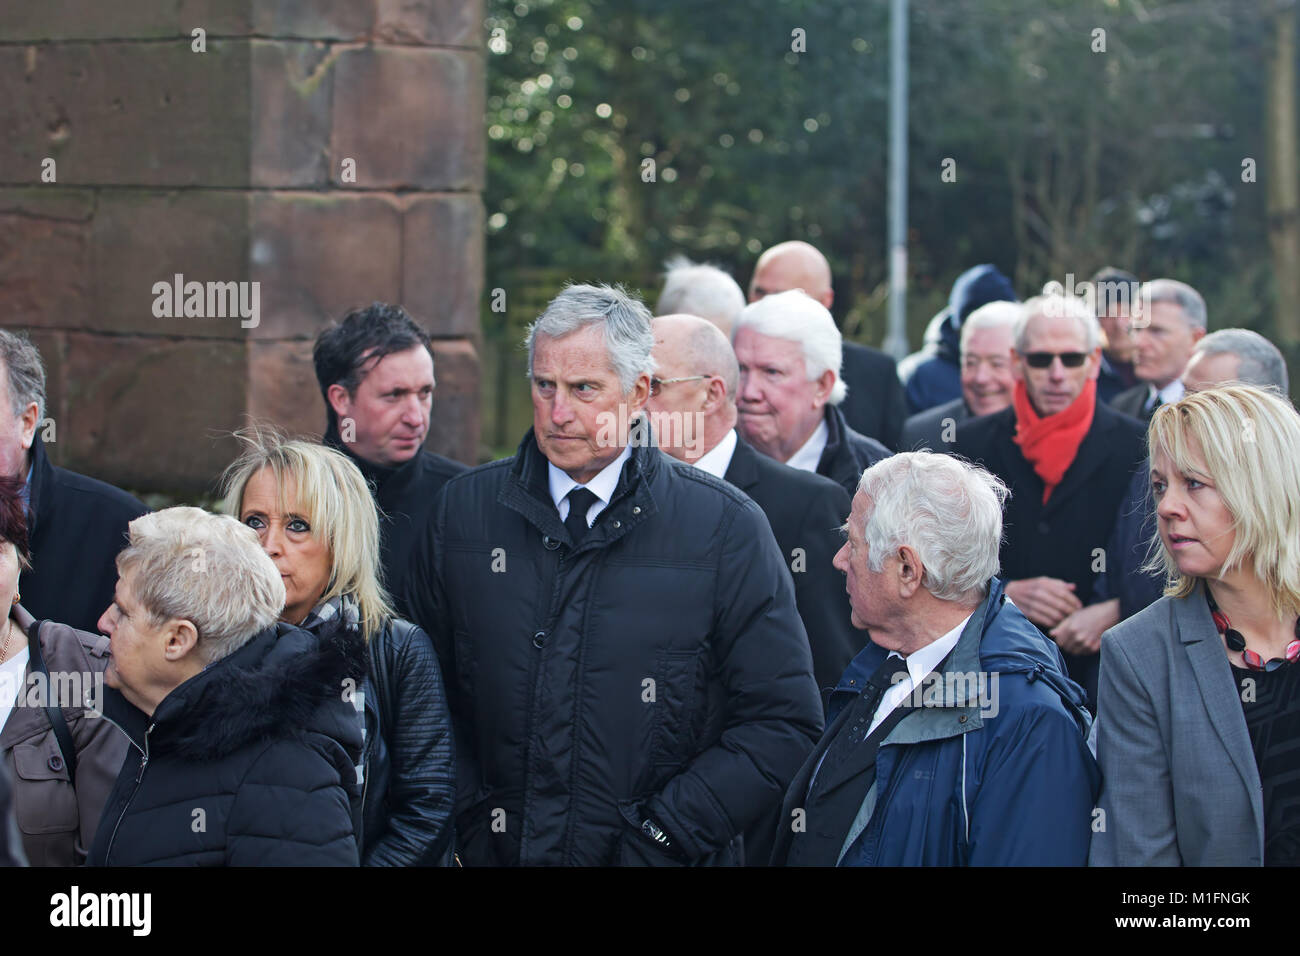 Warrington, Liverpool, UK. 30th Jan, 2018. Ex Liverpool player's attend the funeral of former Liverpool FC goalkeeper - Stock Image